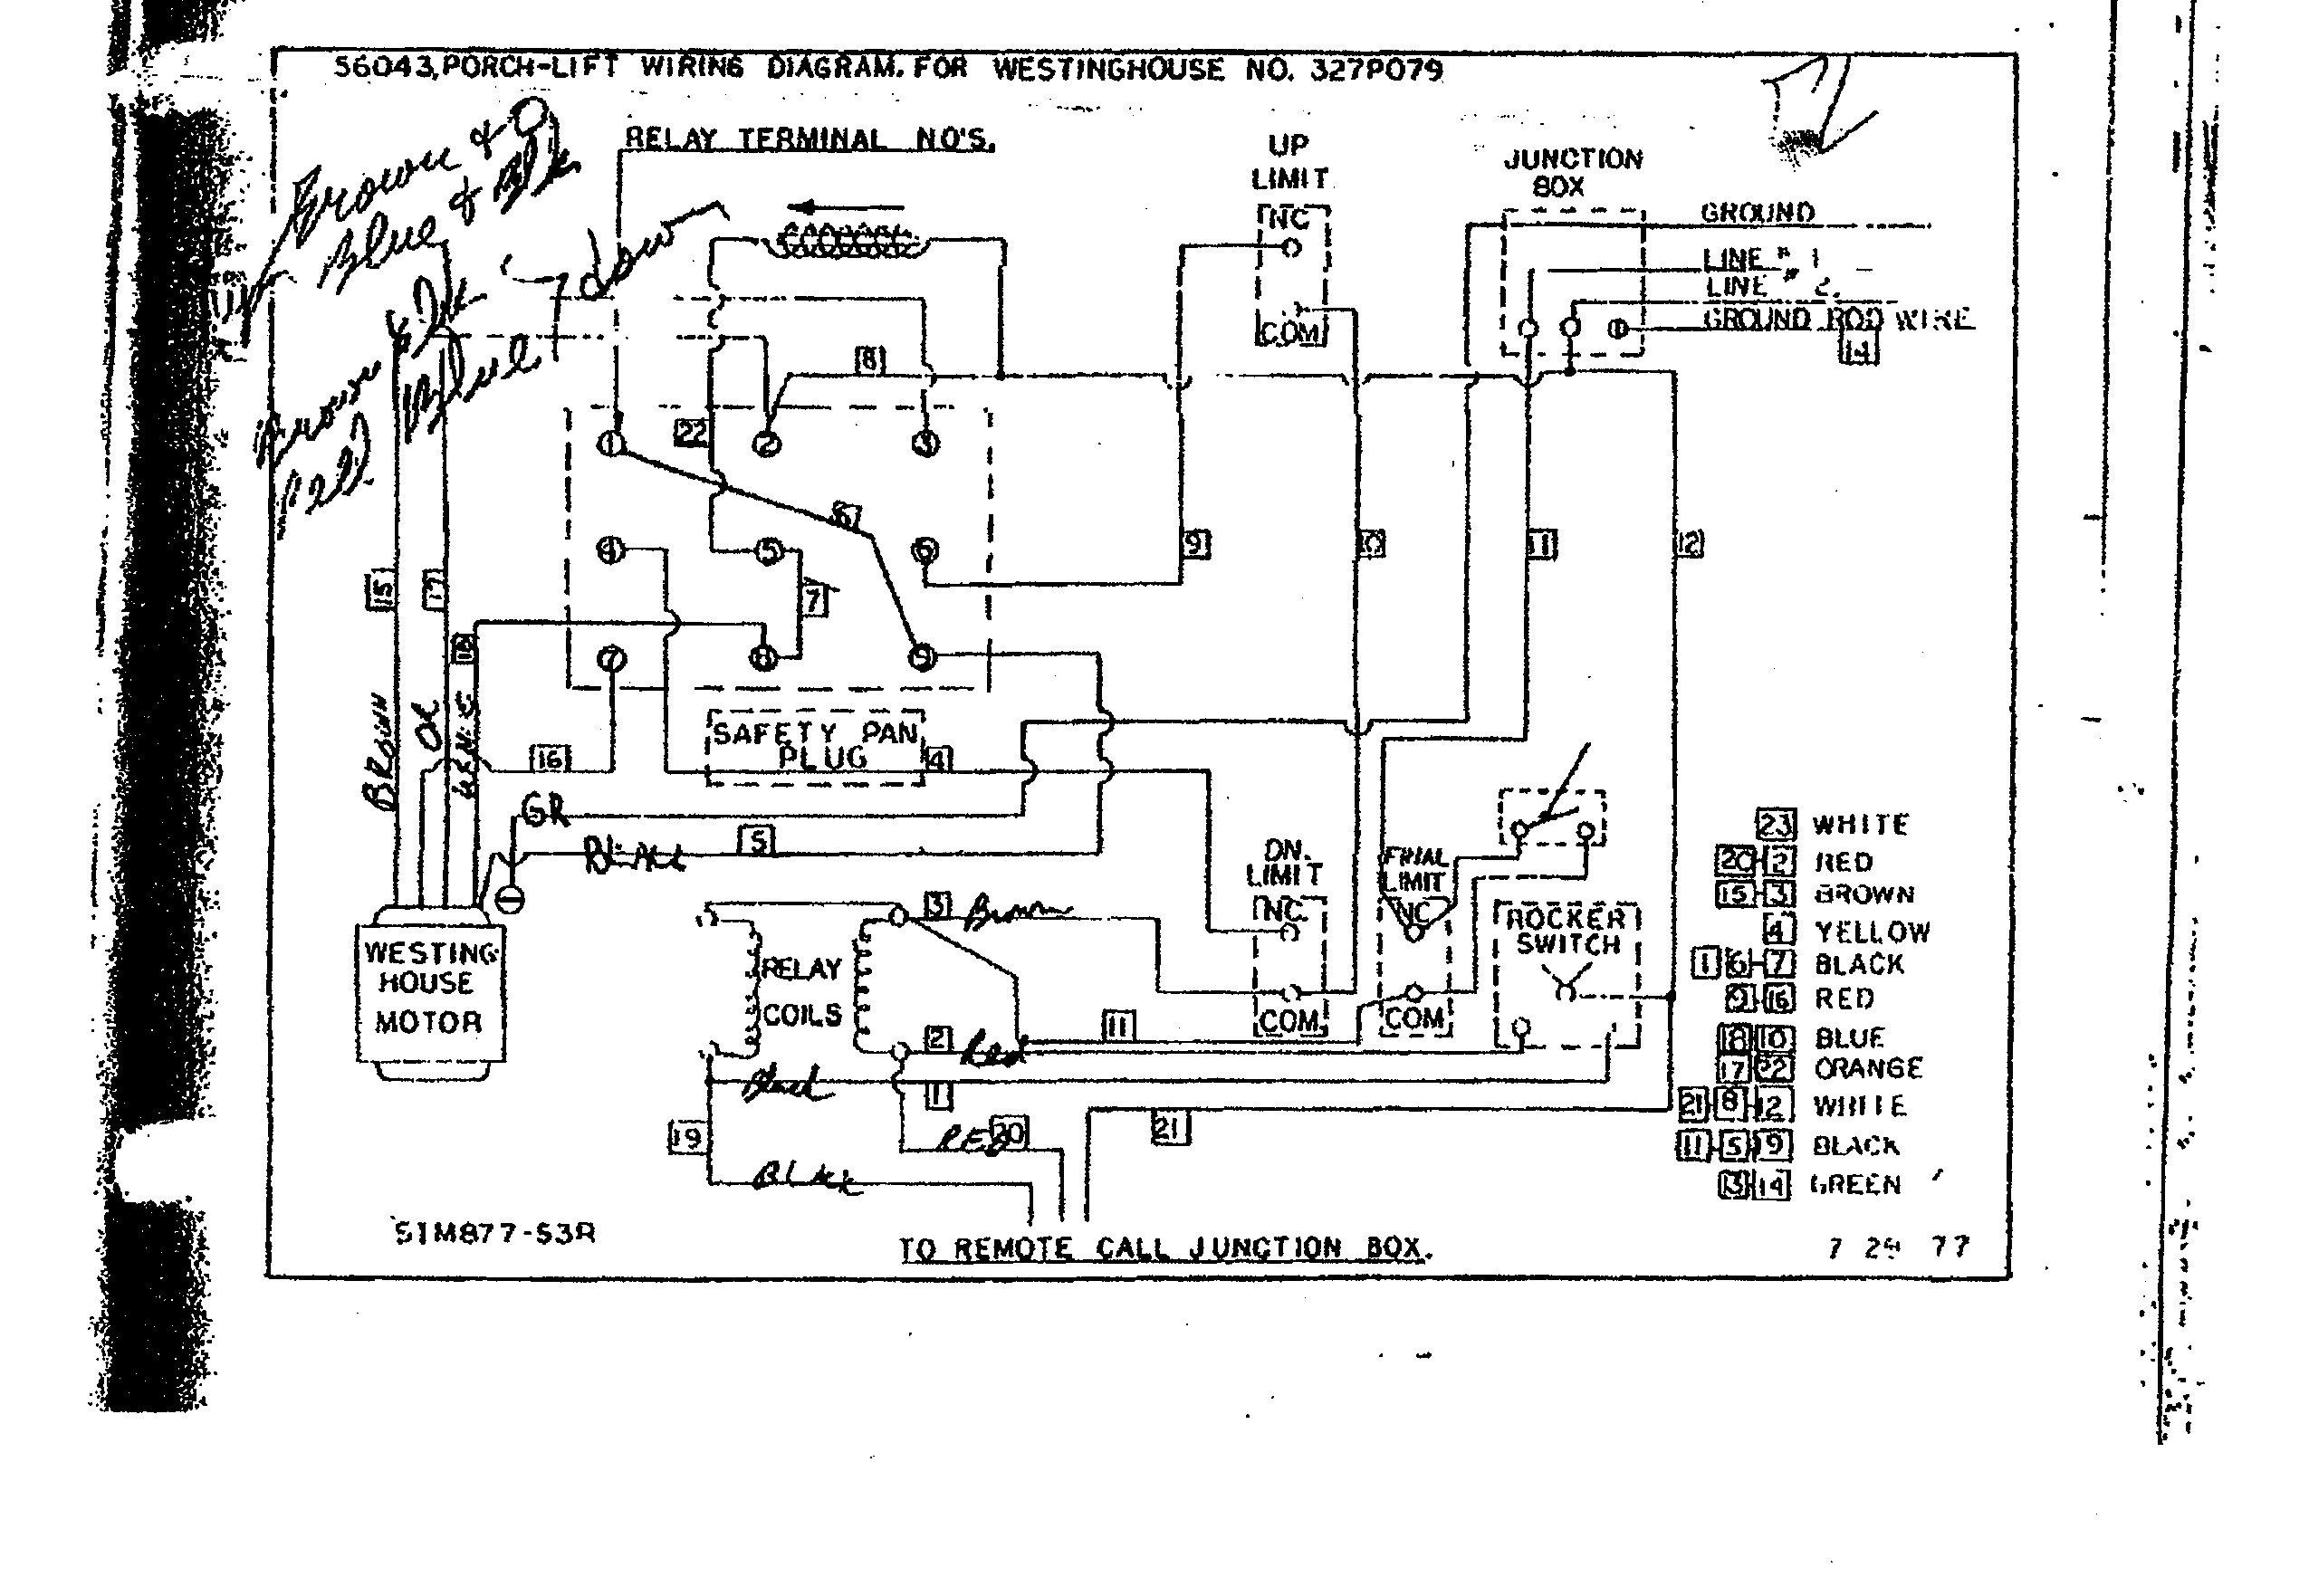 bella elevator wiring diagram who / where can i get help with westinghouse motor wiring?